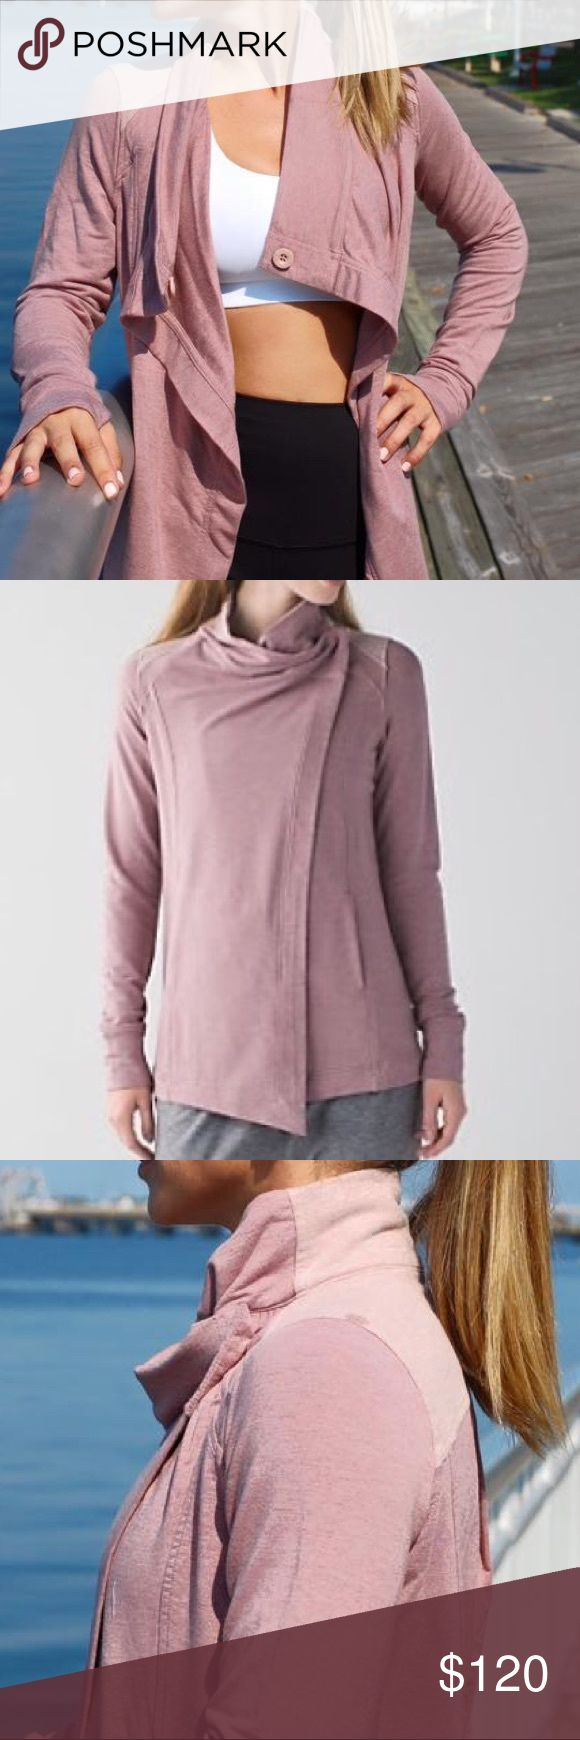 Lululemon Coast Wrap Lululemon super-soft Modal fabric is four-way stretch. Stash your stuff in the front pockets media pocket with cord exit so you don't get tangled in your tunes. thumbholes help keep sleeves down and hands warm. Wear this relaxed layer open and loose when we're feeling breezy after class. Double button, one on the inner and one on the outer collar. Instant coziness! 💌Thank You for your Interest!!😘 ❌NO Trades❌ 💲Fair Offers Accepted💲Want MORE For LESS?✨Use the BUNDLE…